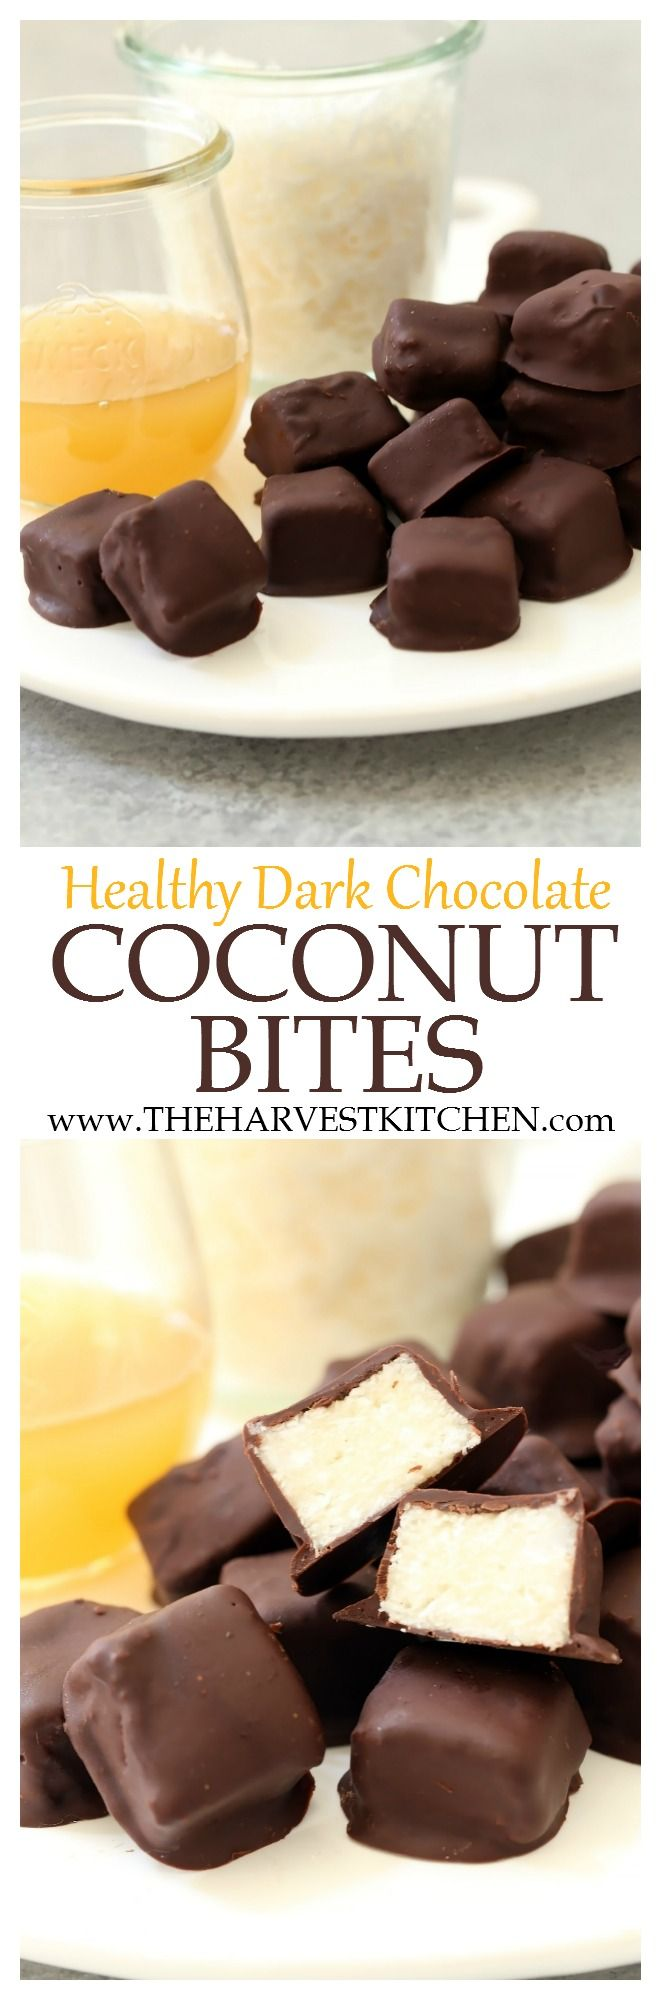 These Healthy Dark Chocolate Coconut Bites are little squares of pure chocolate and coconut bliss. They come together in just 10 minutes and they offer a healthy dose of good fats (coconut oil), antioxidants (dark chocolate) and iron and fiber (coconut).